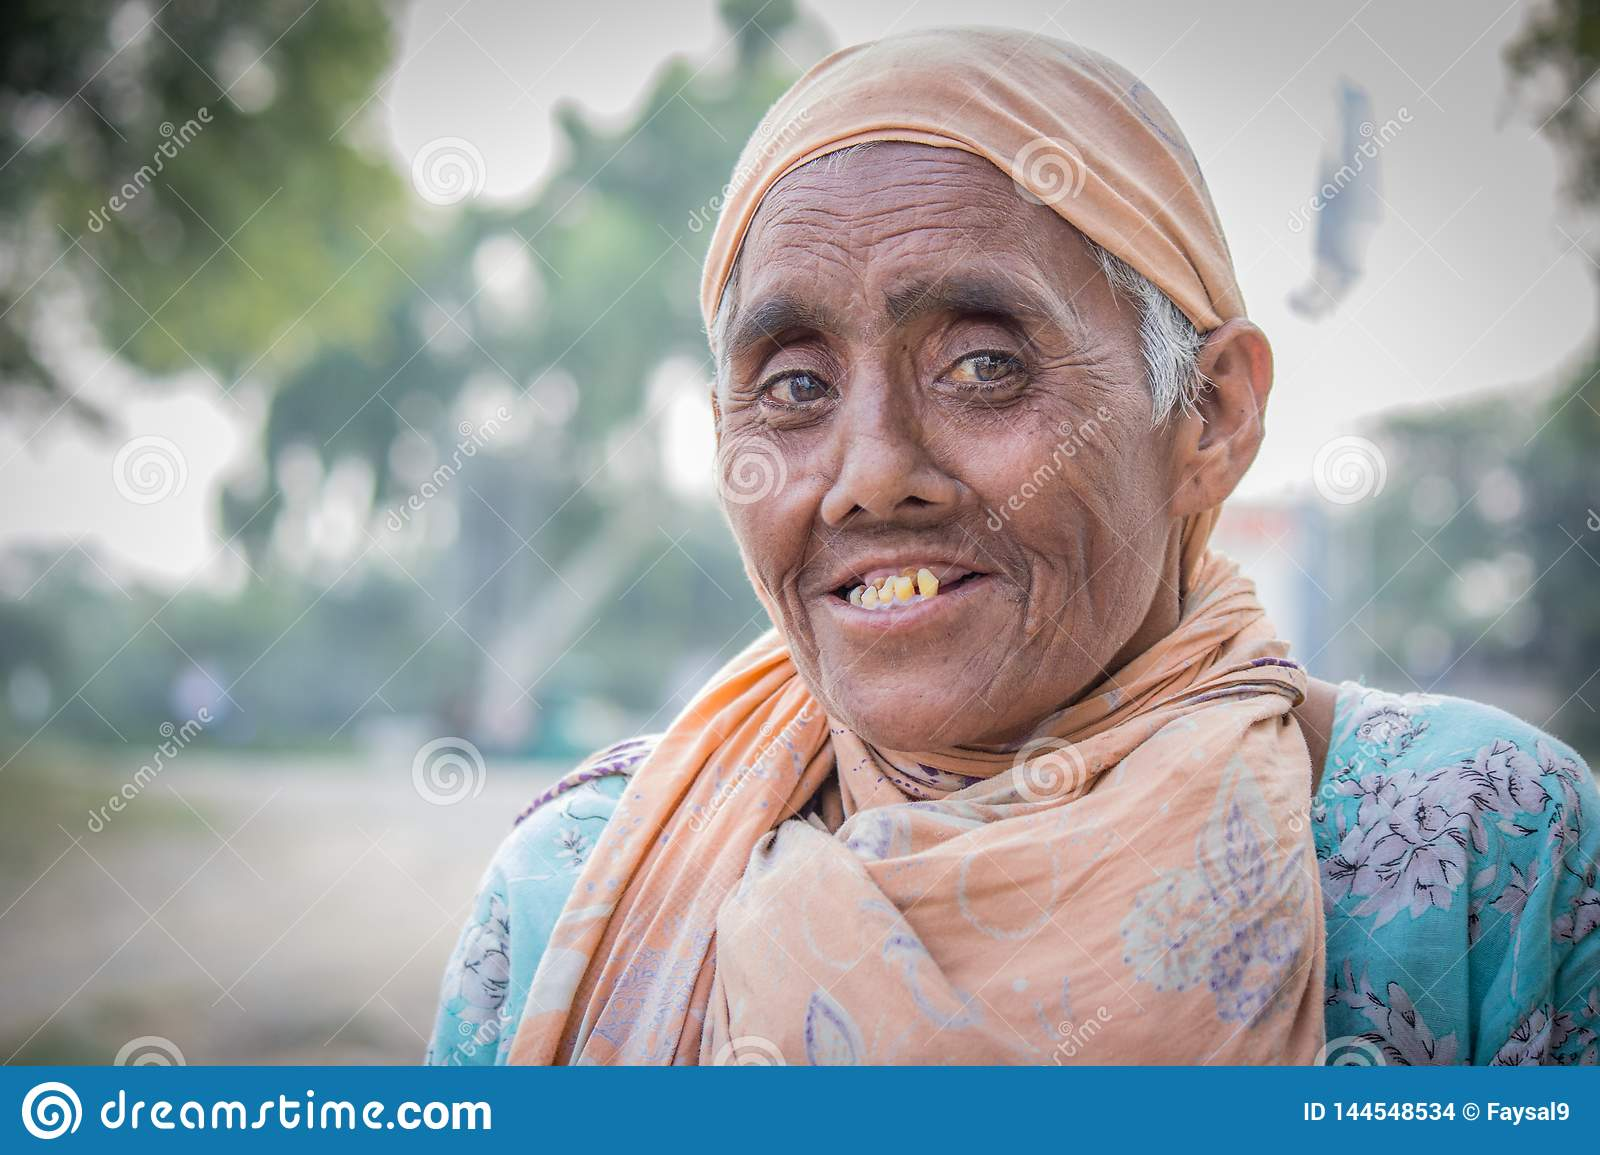 Old Pakistani woman begging on the street